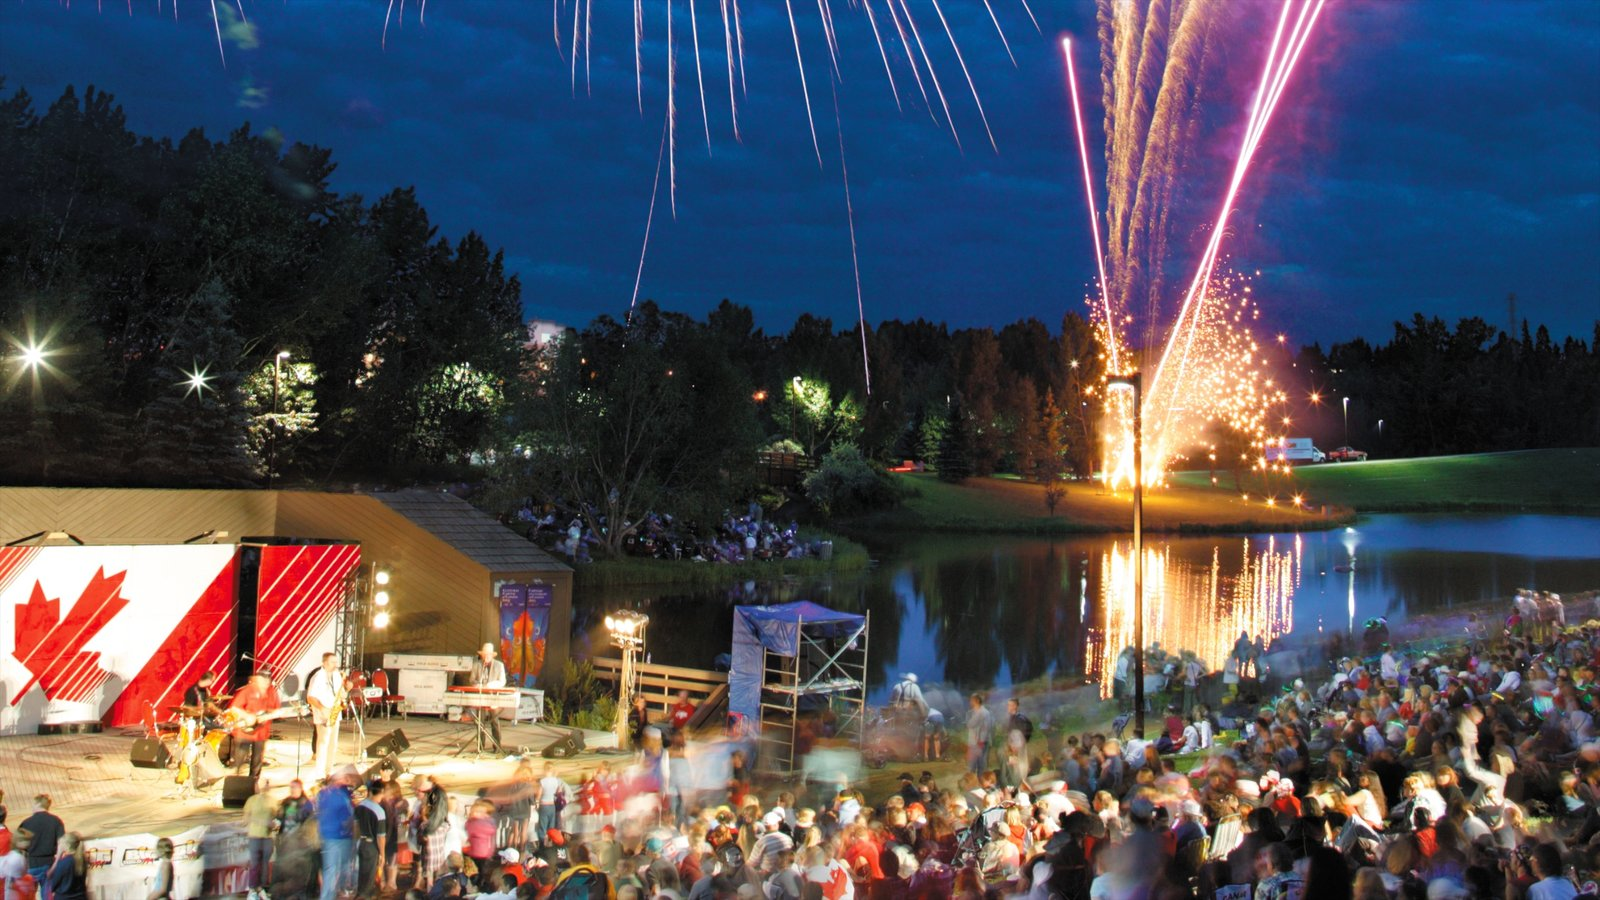 Red Deer featuring a festival, nightlife and performance art